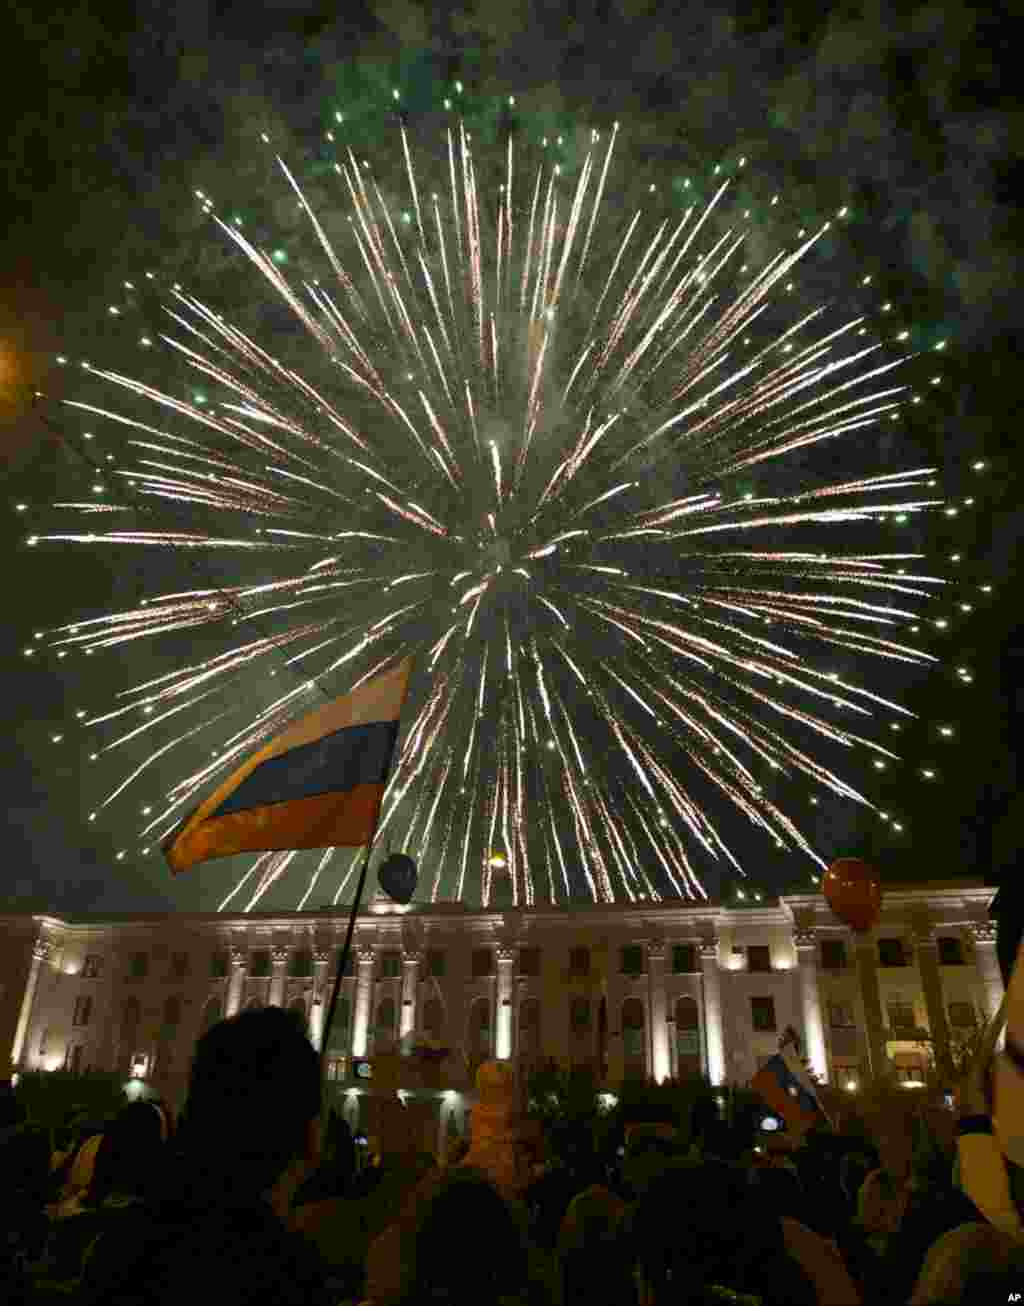 People watch fireworks at the central Lenin Square in Simferopol, Crimea, Mar, 21, 2014. Russian President Vladimir Putin completed the annexation of Crimea, signing a law making the Black Sea peninsula part of Russia.